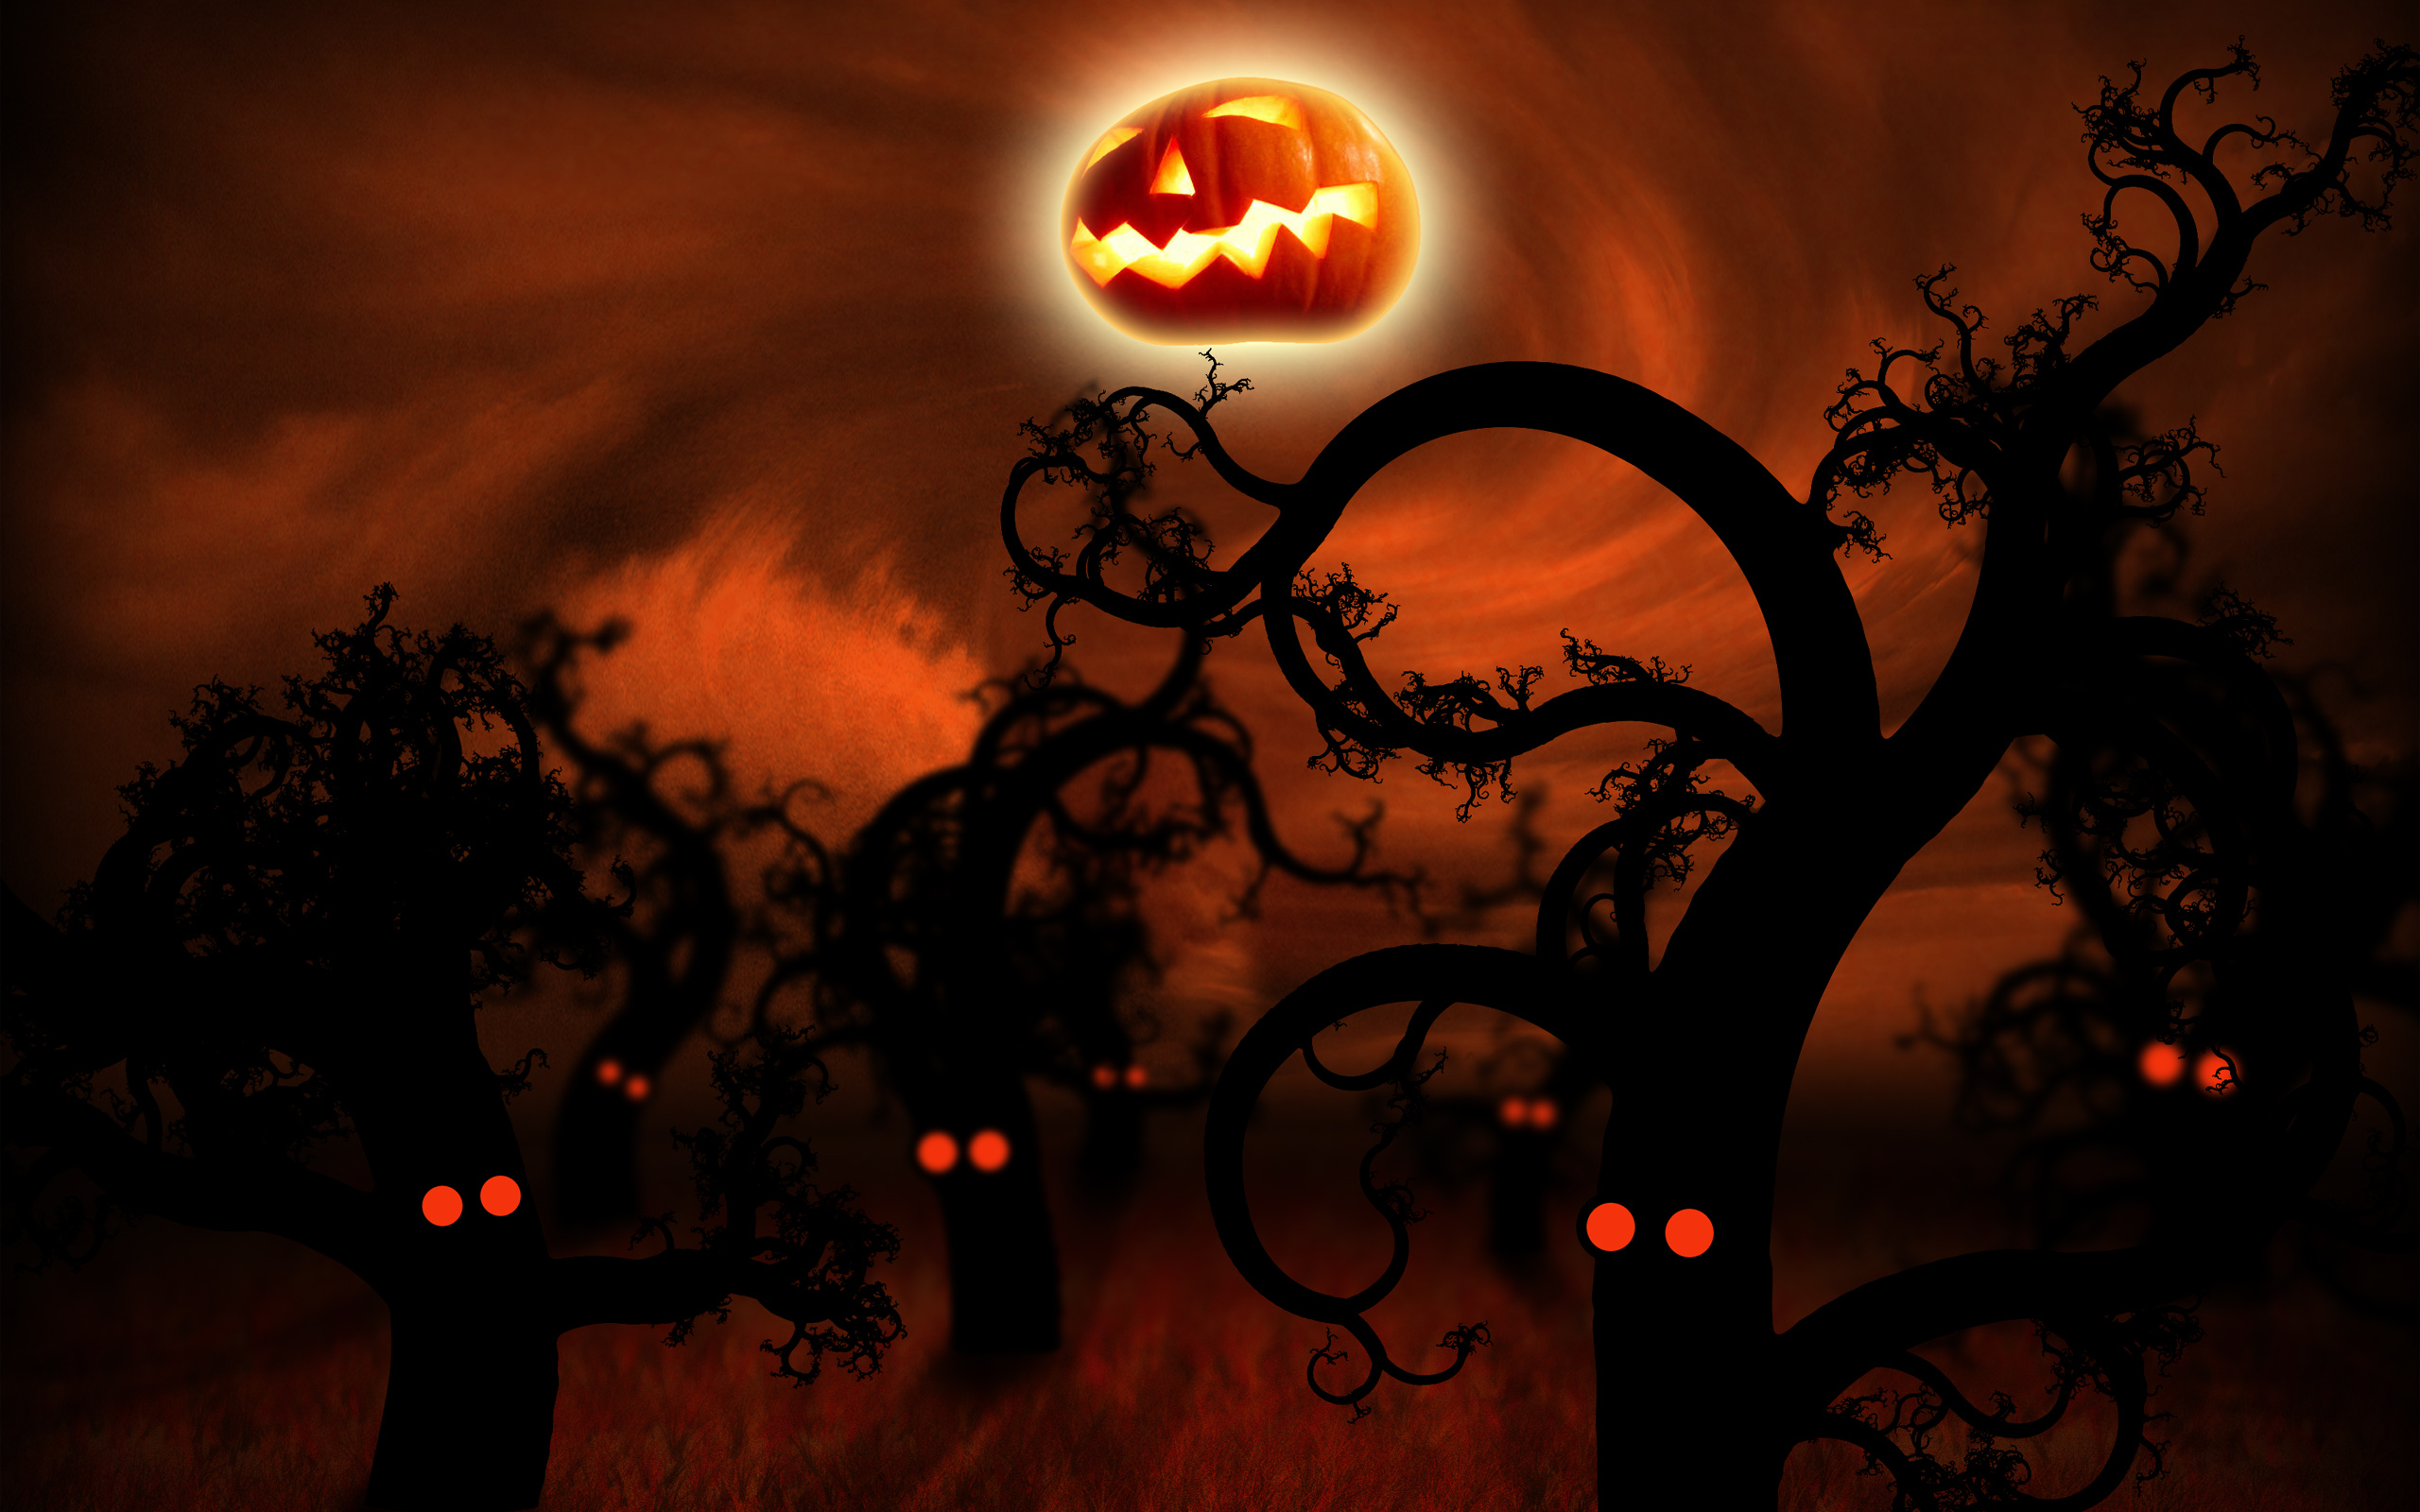 Halloween Wallpapers Halloween 2013 HD Wallpapers Desktop 2560x1600